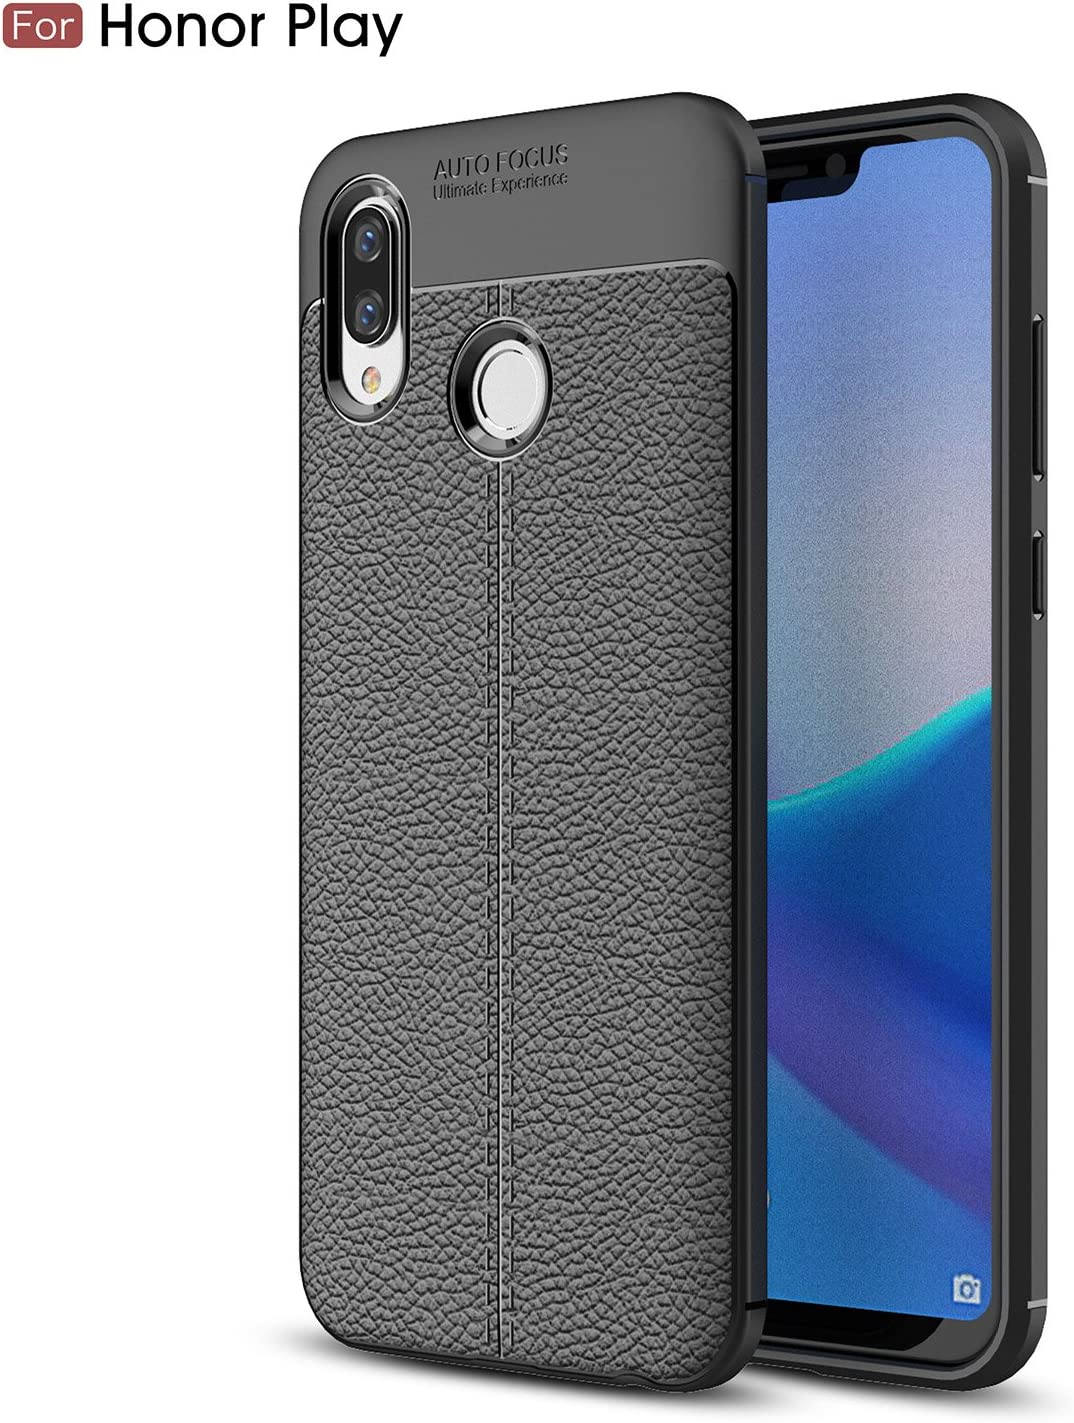 Cruzerlite Honor Play Custodia, Flexible Slim Case with Leather Texture Grip Pattern and Shock Absorption TPU Cover for Huawei Honor Play (Black): Amazon.es: Electrónica